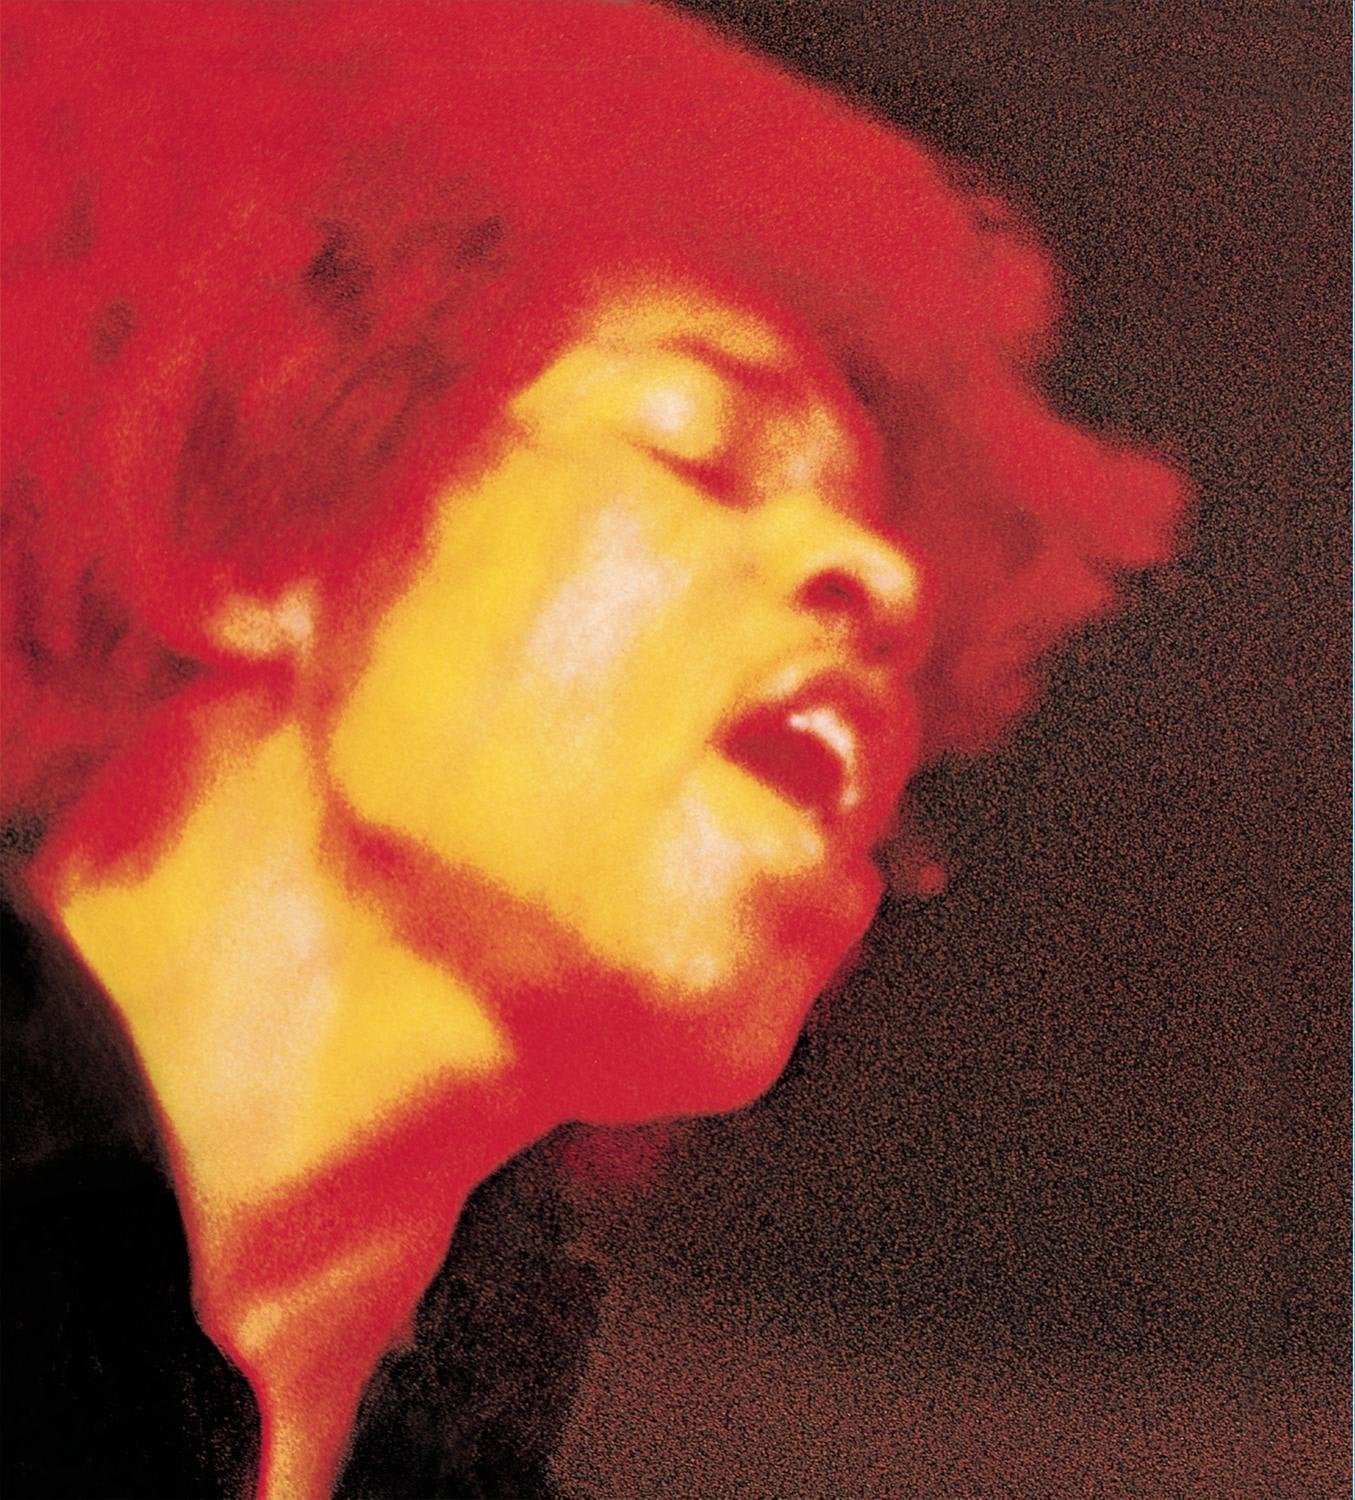 Jimi Hendrix - Electric Ladyland LP